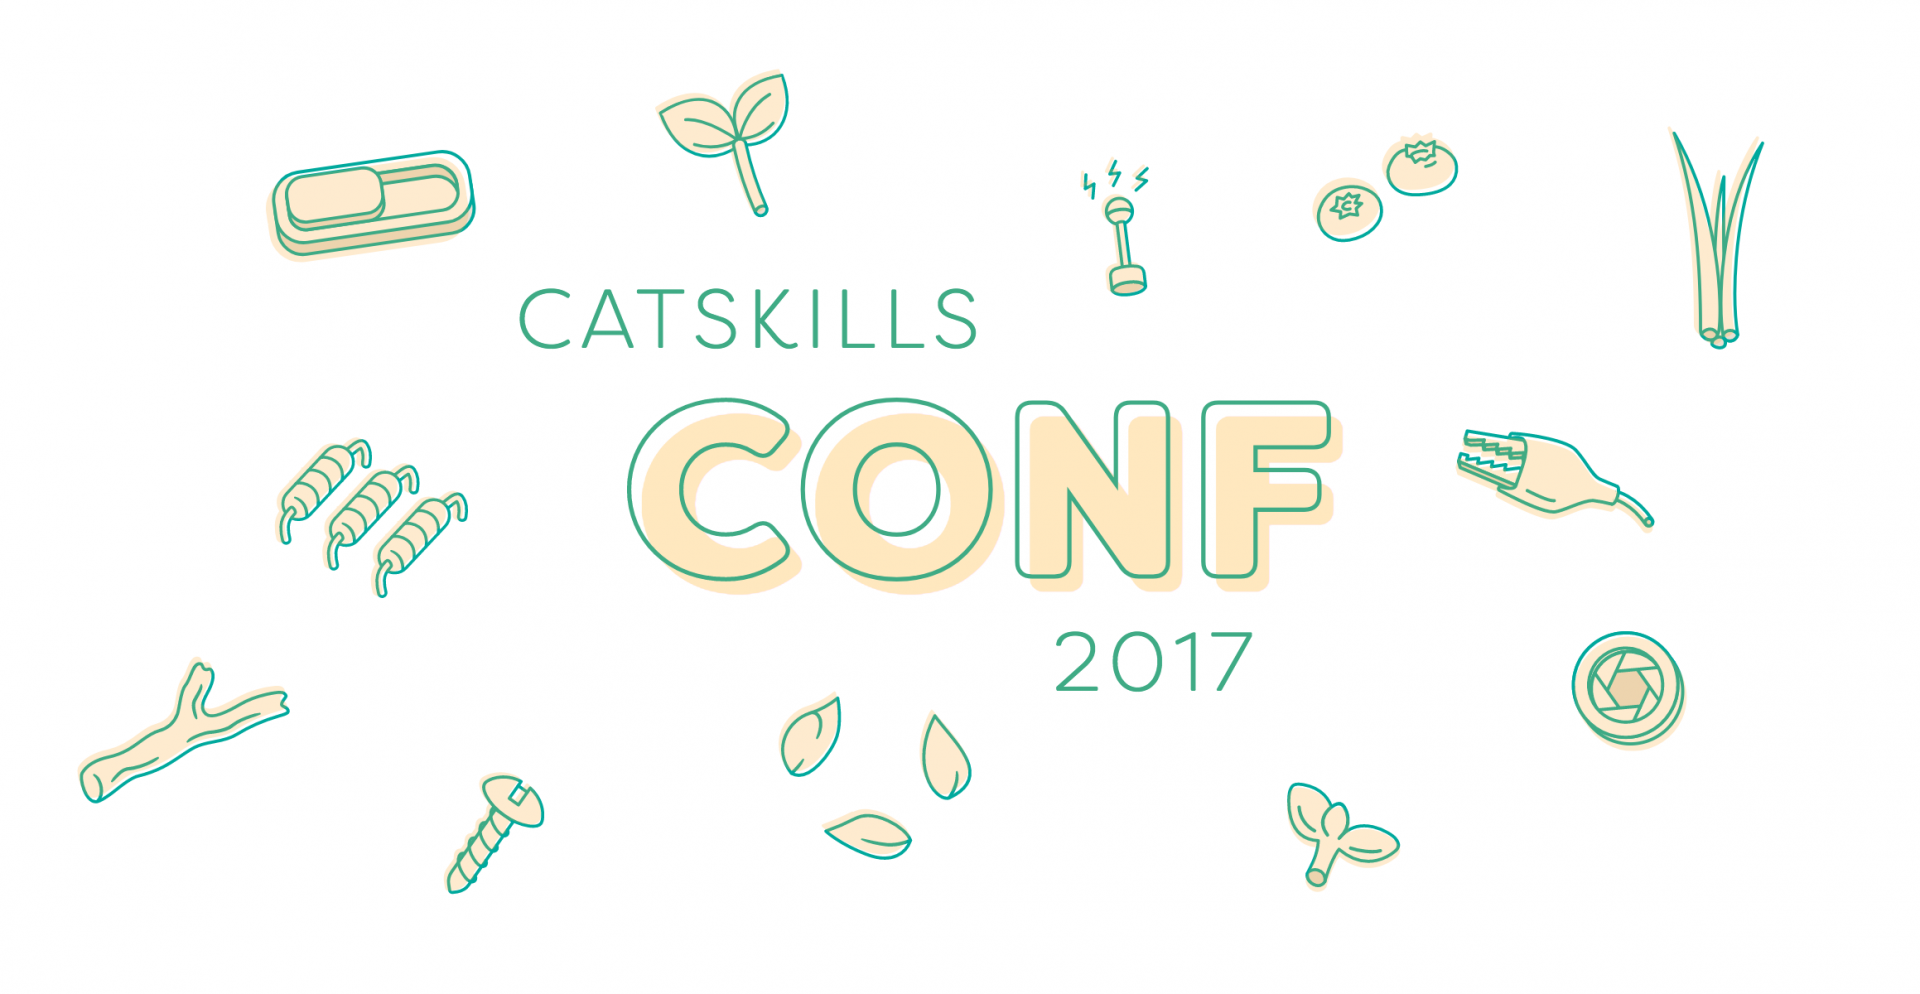 Catskills Conf Website